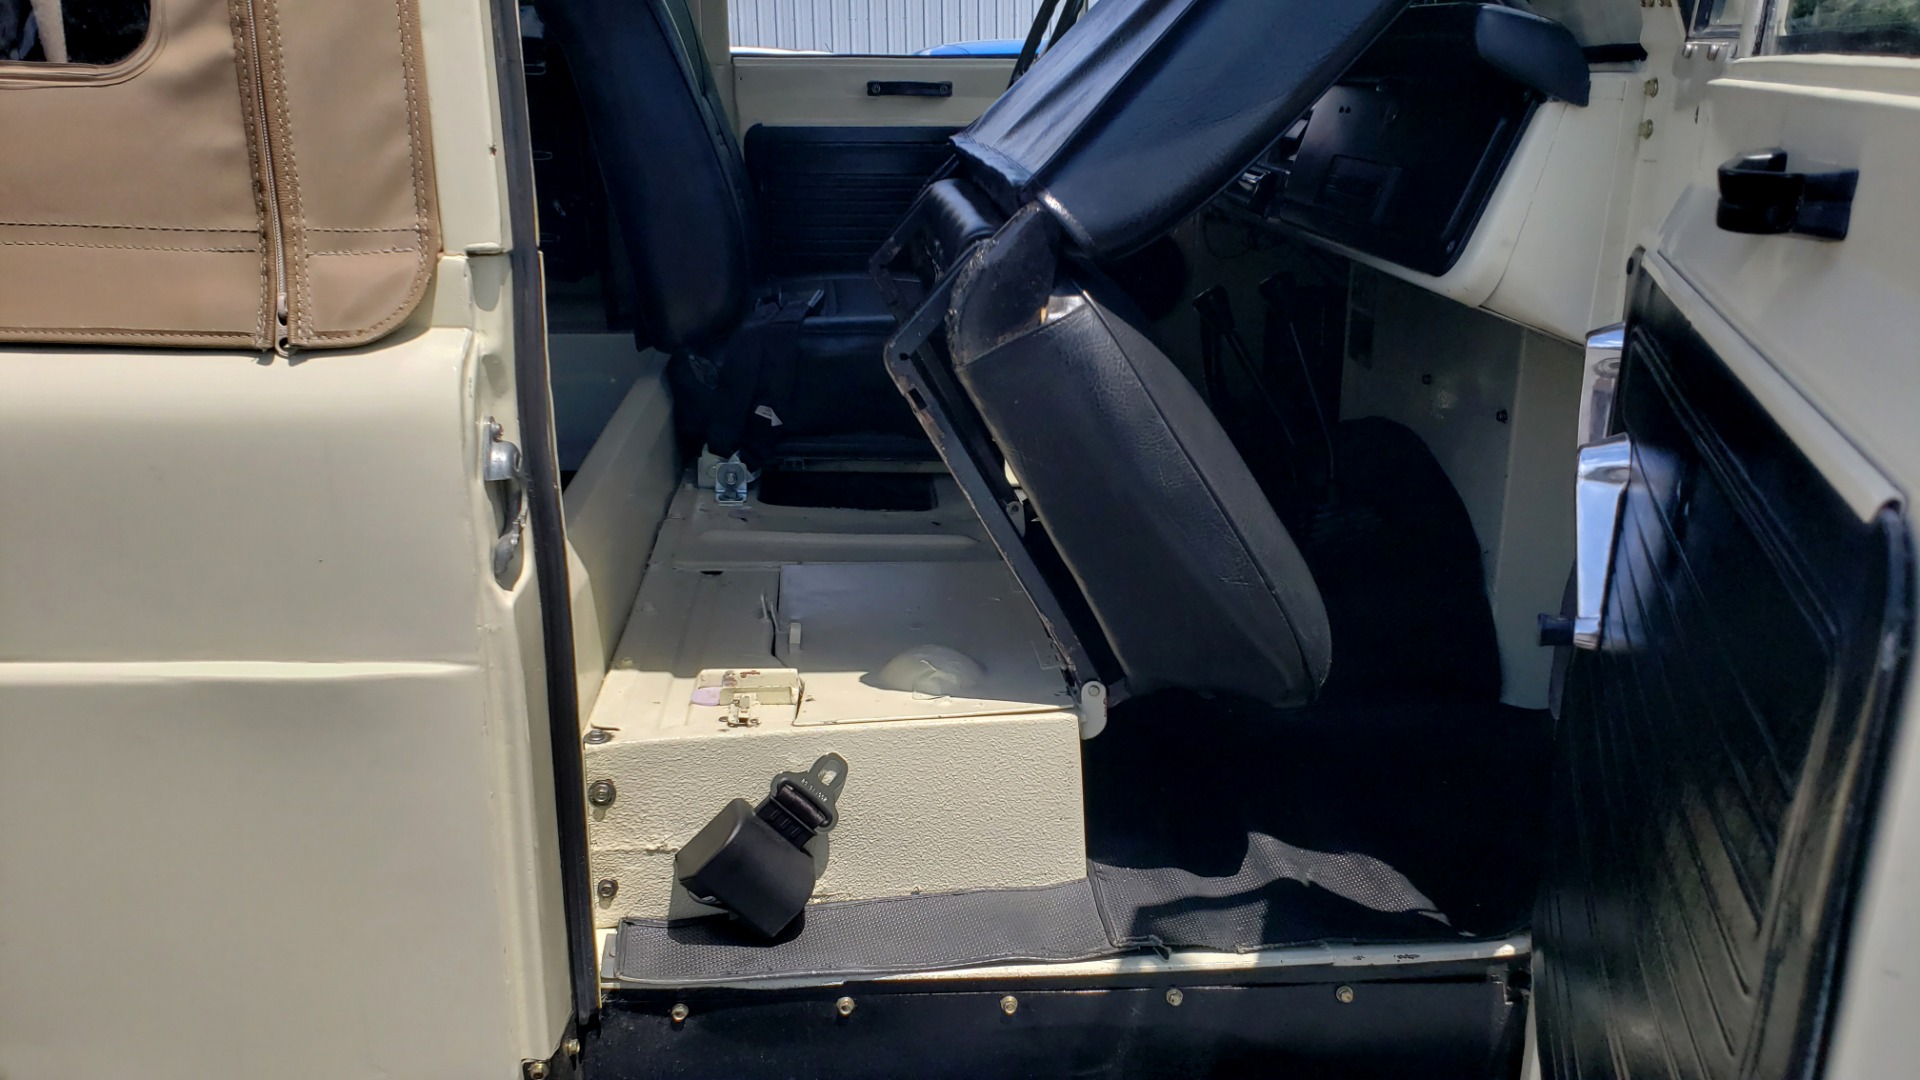 Used 1978 Nissan PATROL 4x4 / SOFT-TOP / 6-CYL / MANUAL / SEATS-9 / FULLY RESTORED for sale $32,400 at Formula Imports in Charlotte NC 28227 55